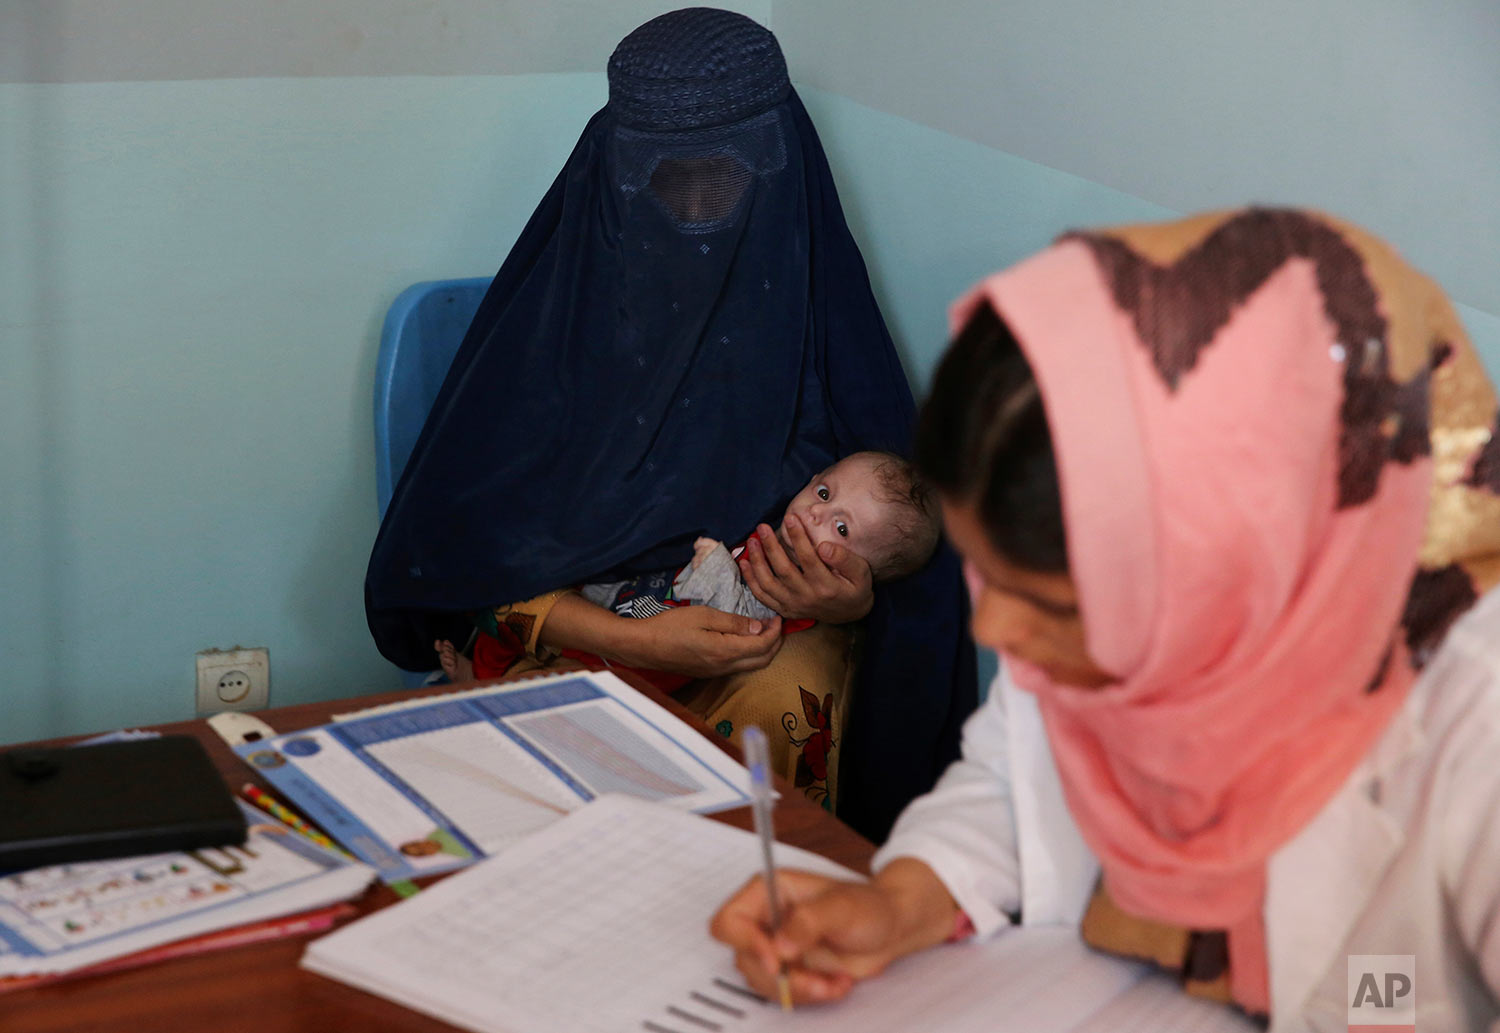 A woman holds her son, Abdullah, who is suffering from malnutrition as a doctor writes a prescription for him at a UNICEF clinic in Jabal Saraj north of Kabul, Afghanistan, Aug. 26, 2019. Days ago, he was at an emergency ward. (AP Photo/Rafiq Maqbool)